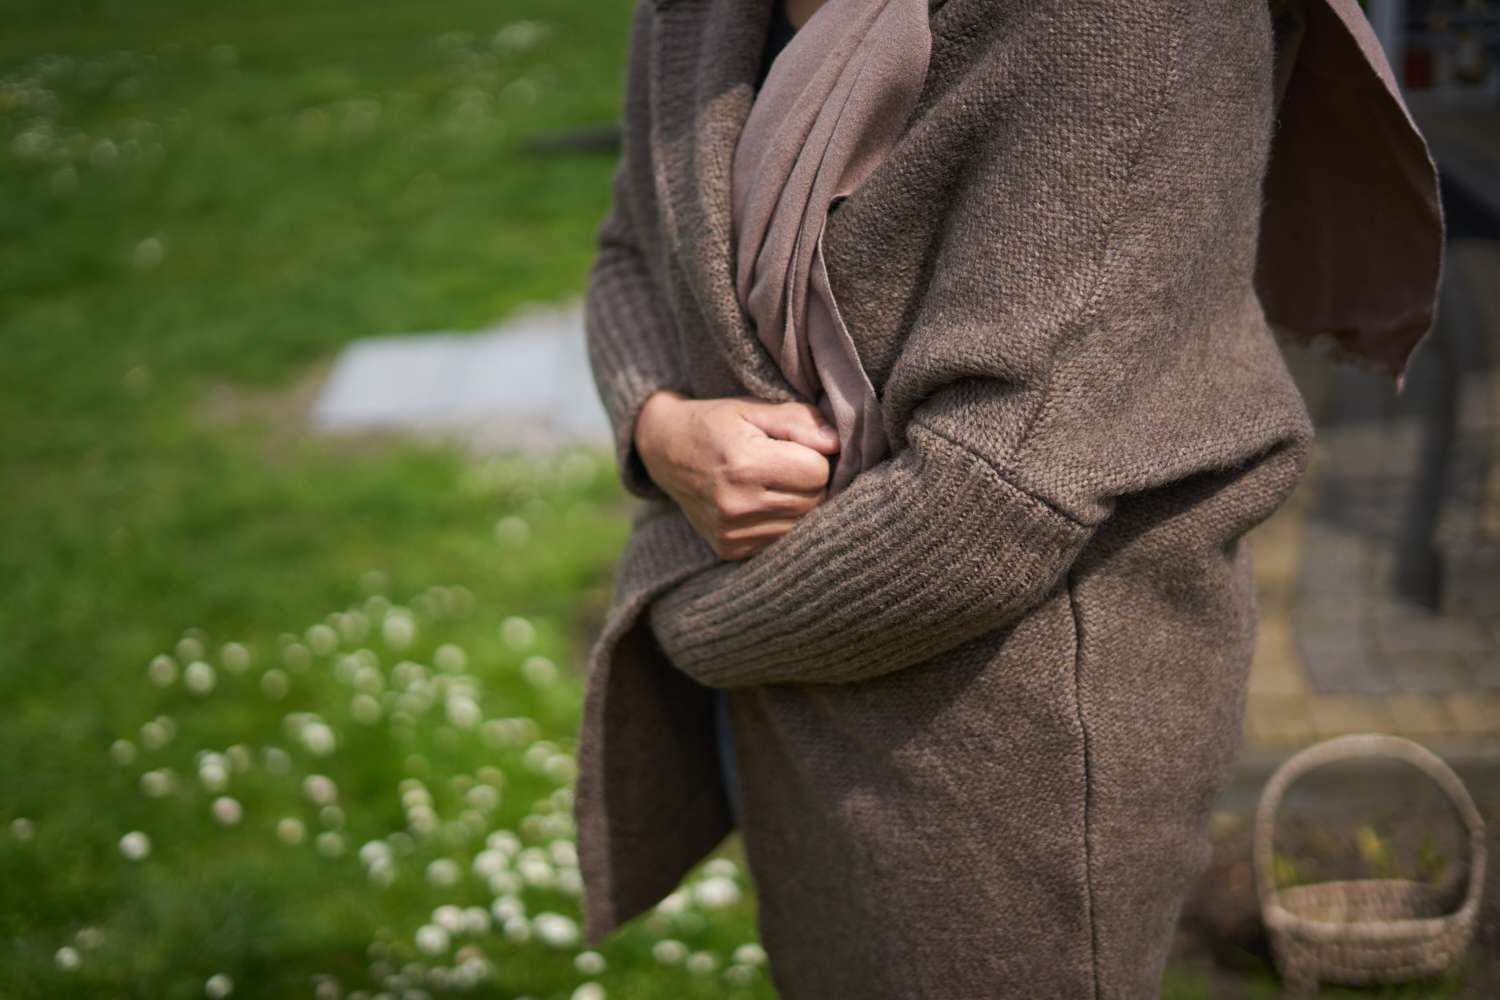 person clutches brown knitted cardigan around them while outside near green grass